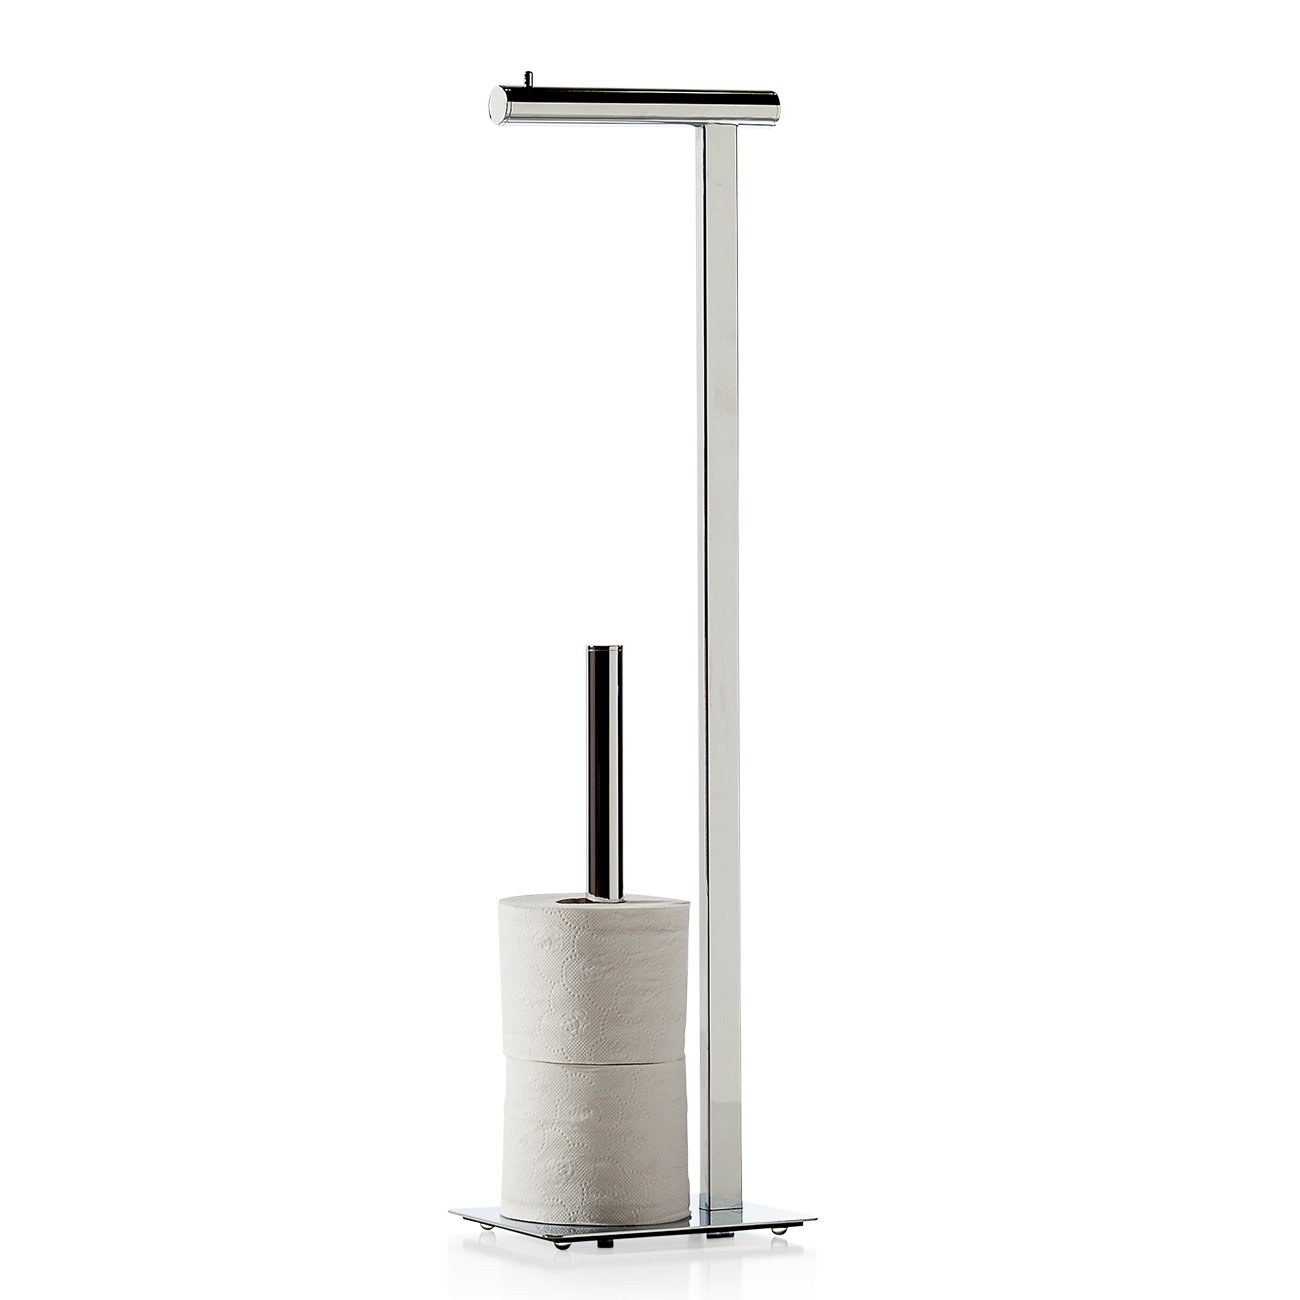 Torre & Tagus 950145 Pacific Spa Free Standing Toilet Paper Holder by Torre & Tagus (Image #1)